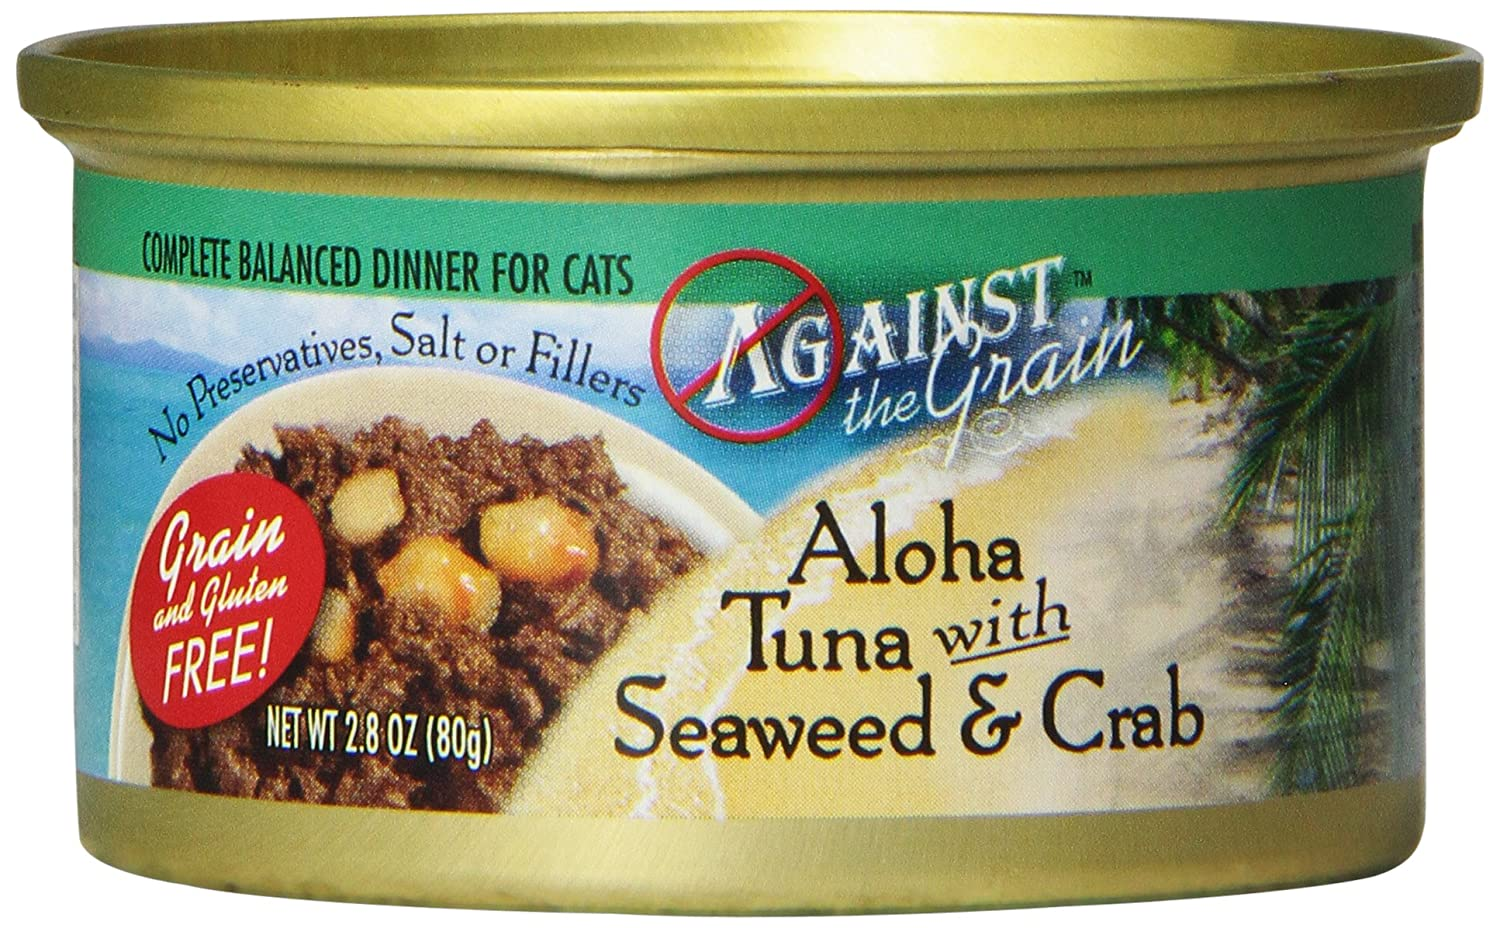 EVANGER'S 776239 24-Pack Atg Aloha Tuna with Seaweed and Crab Food for Cats, 2.8-Ounce